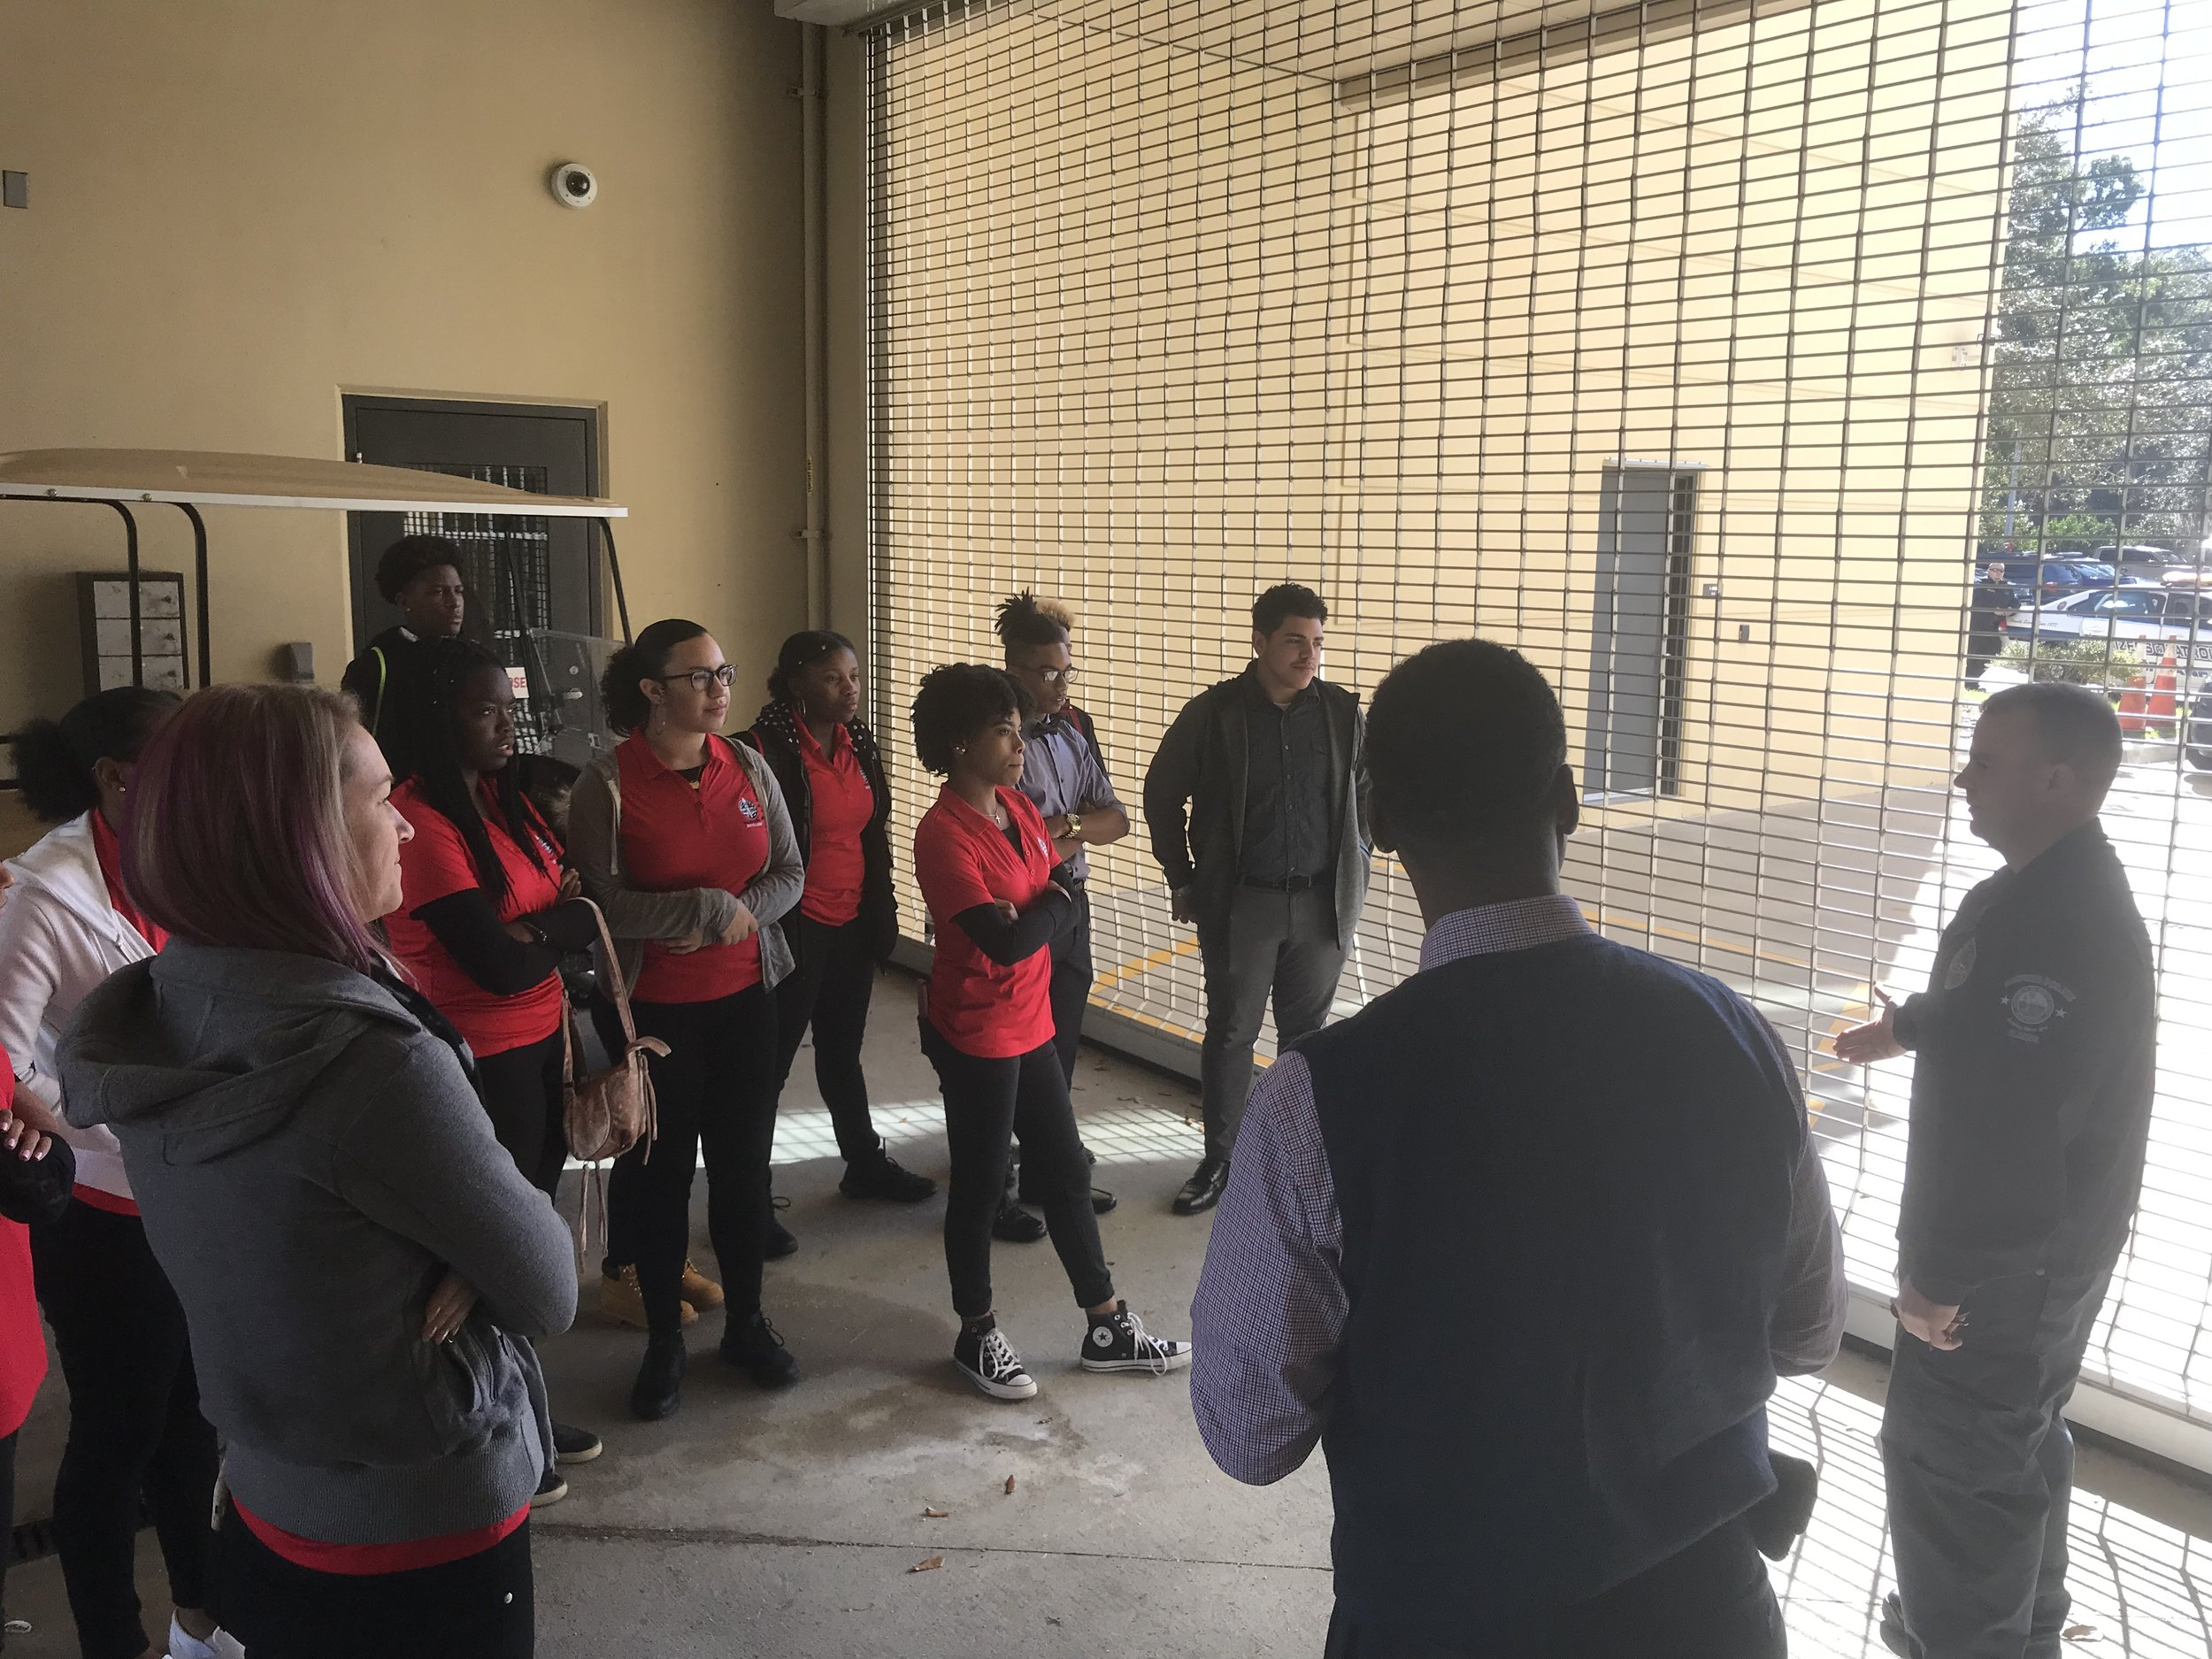 Tour at the Local Sanford Police Department